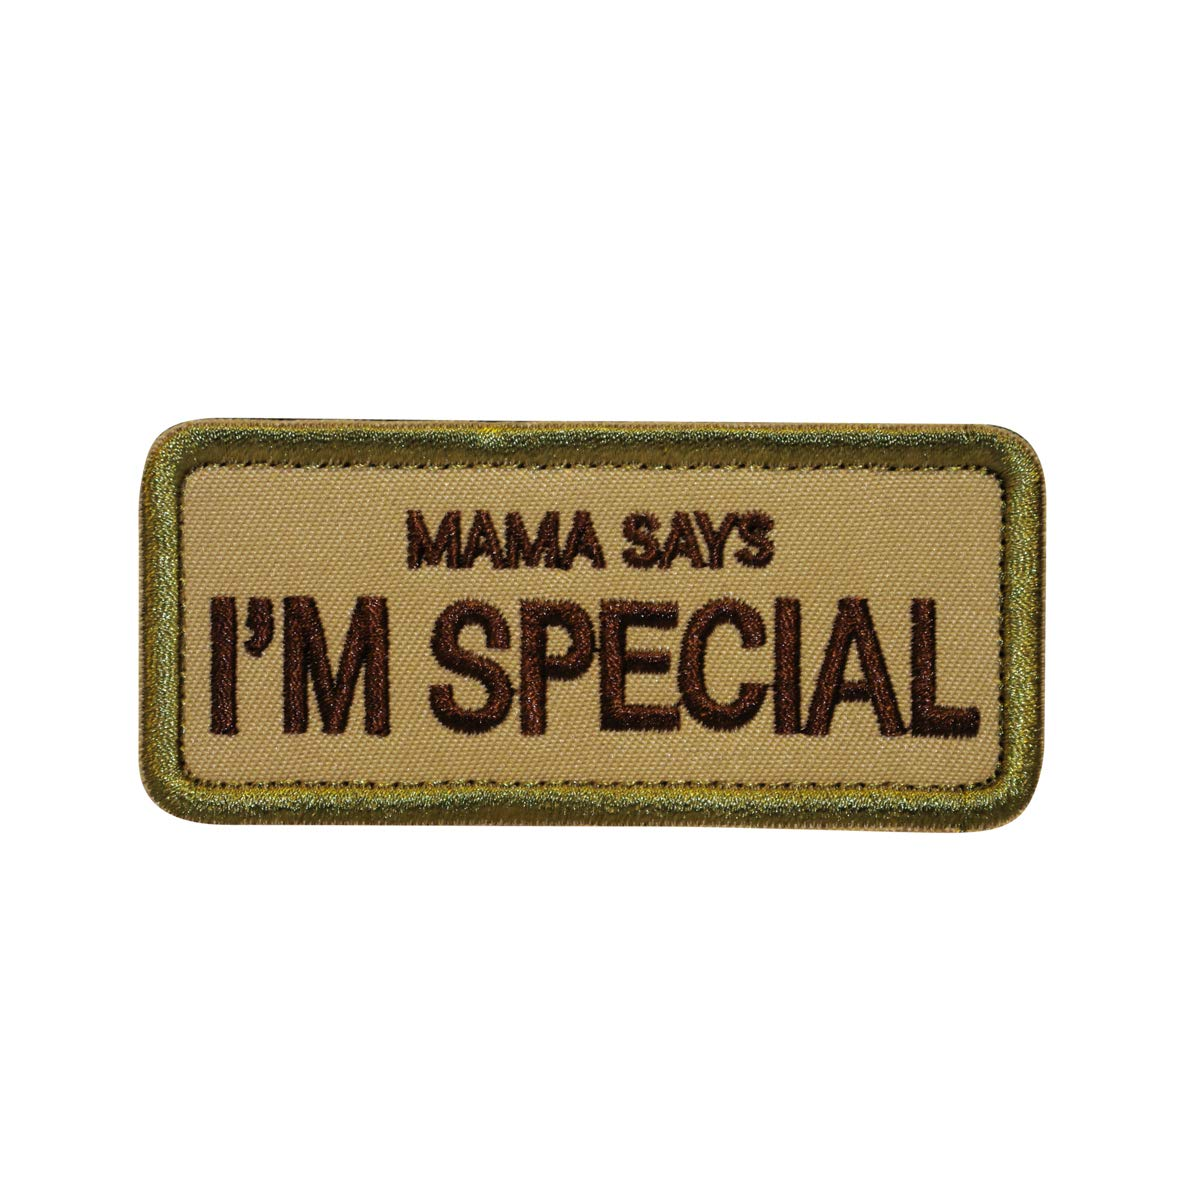 Cobra Tactical Solutions Military Embroidery Moral Patch | Mama Says I'm Special with Hook & Loop for Airsoft/Paintball